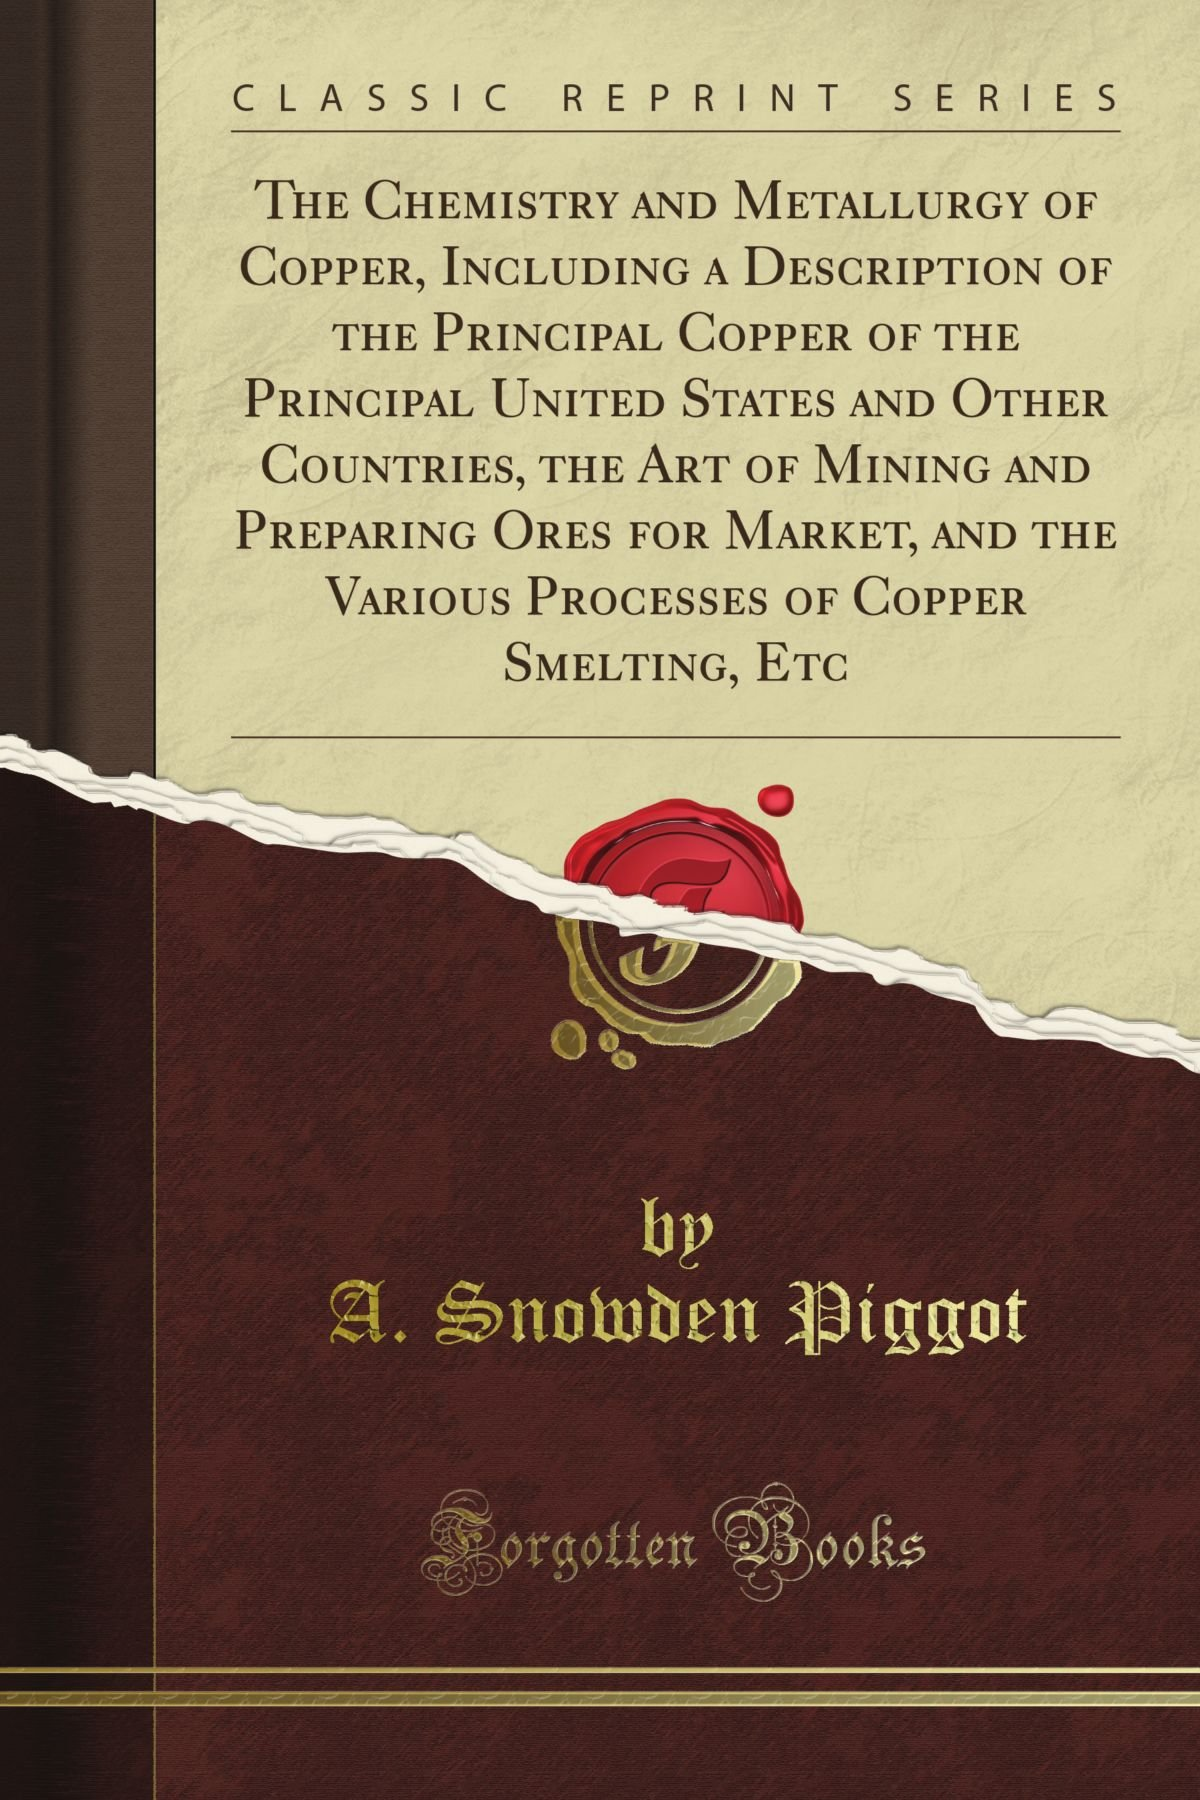 The Chemistry and Metallurgy of Copper, Including a Description of the Principal Copper of the Principal United States and Other Countries, the Art of ... the Various Processes of Copper Smelting, Etc pdf epub